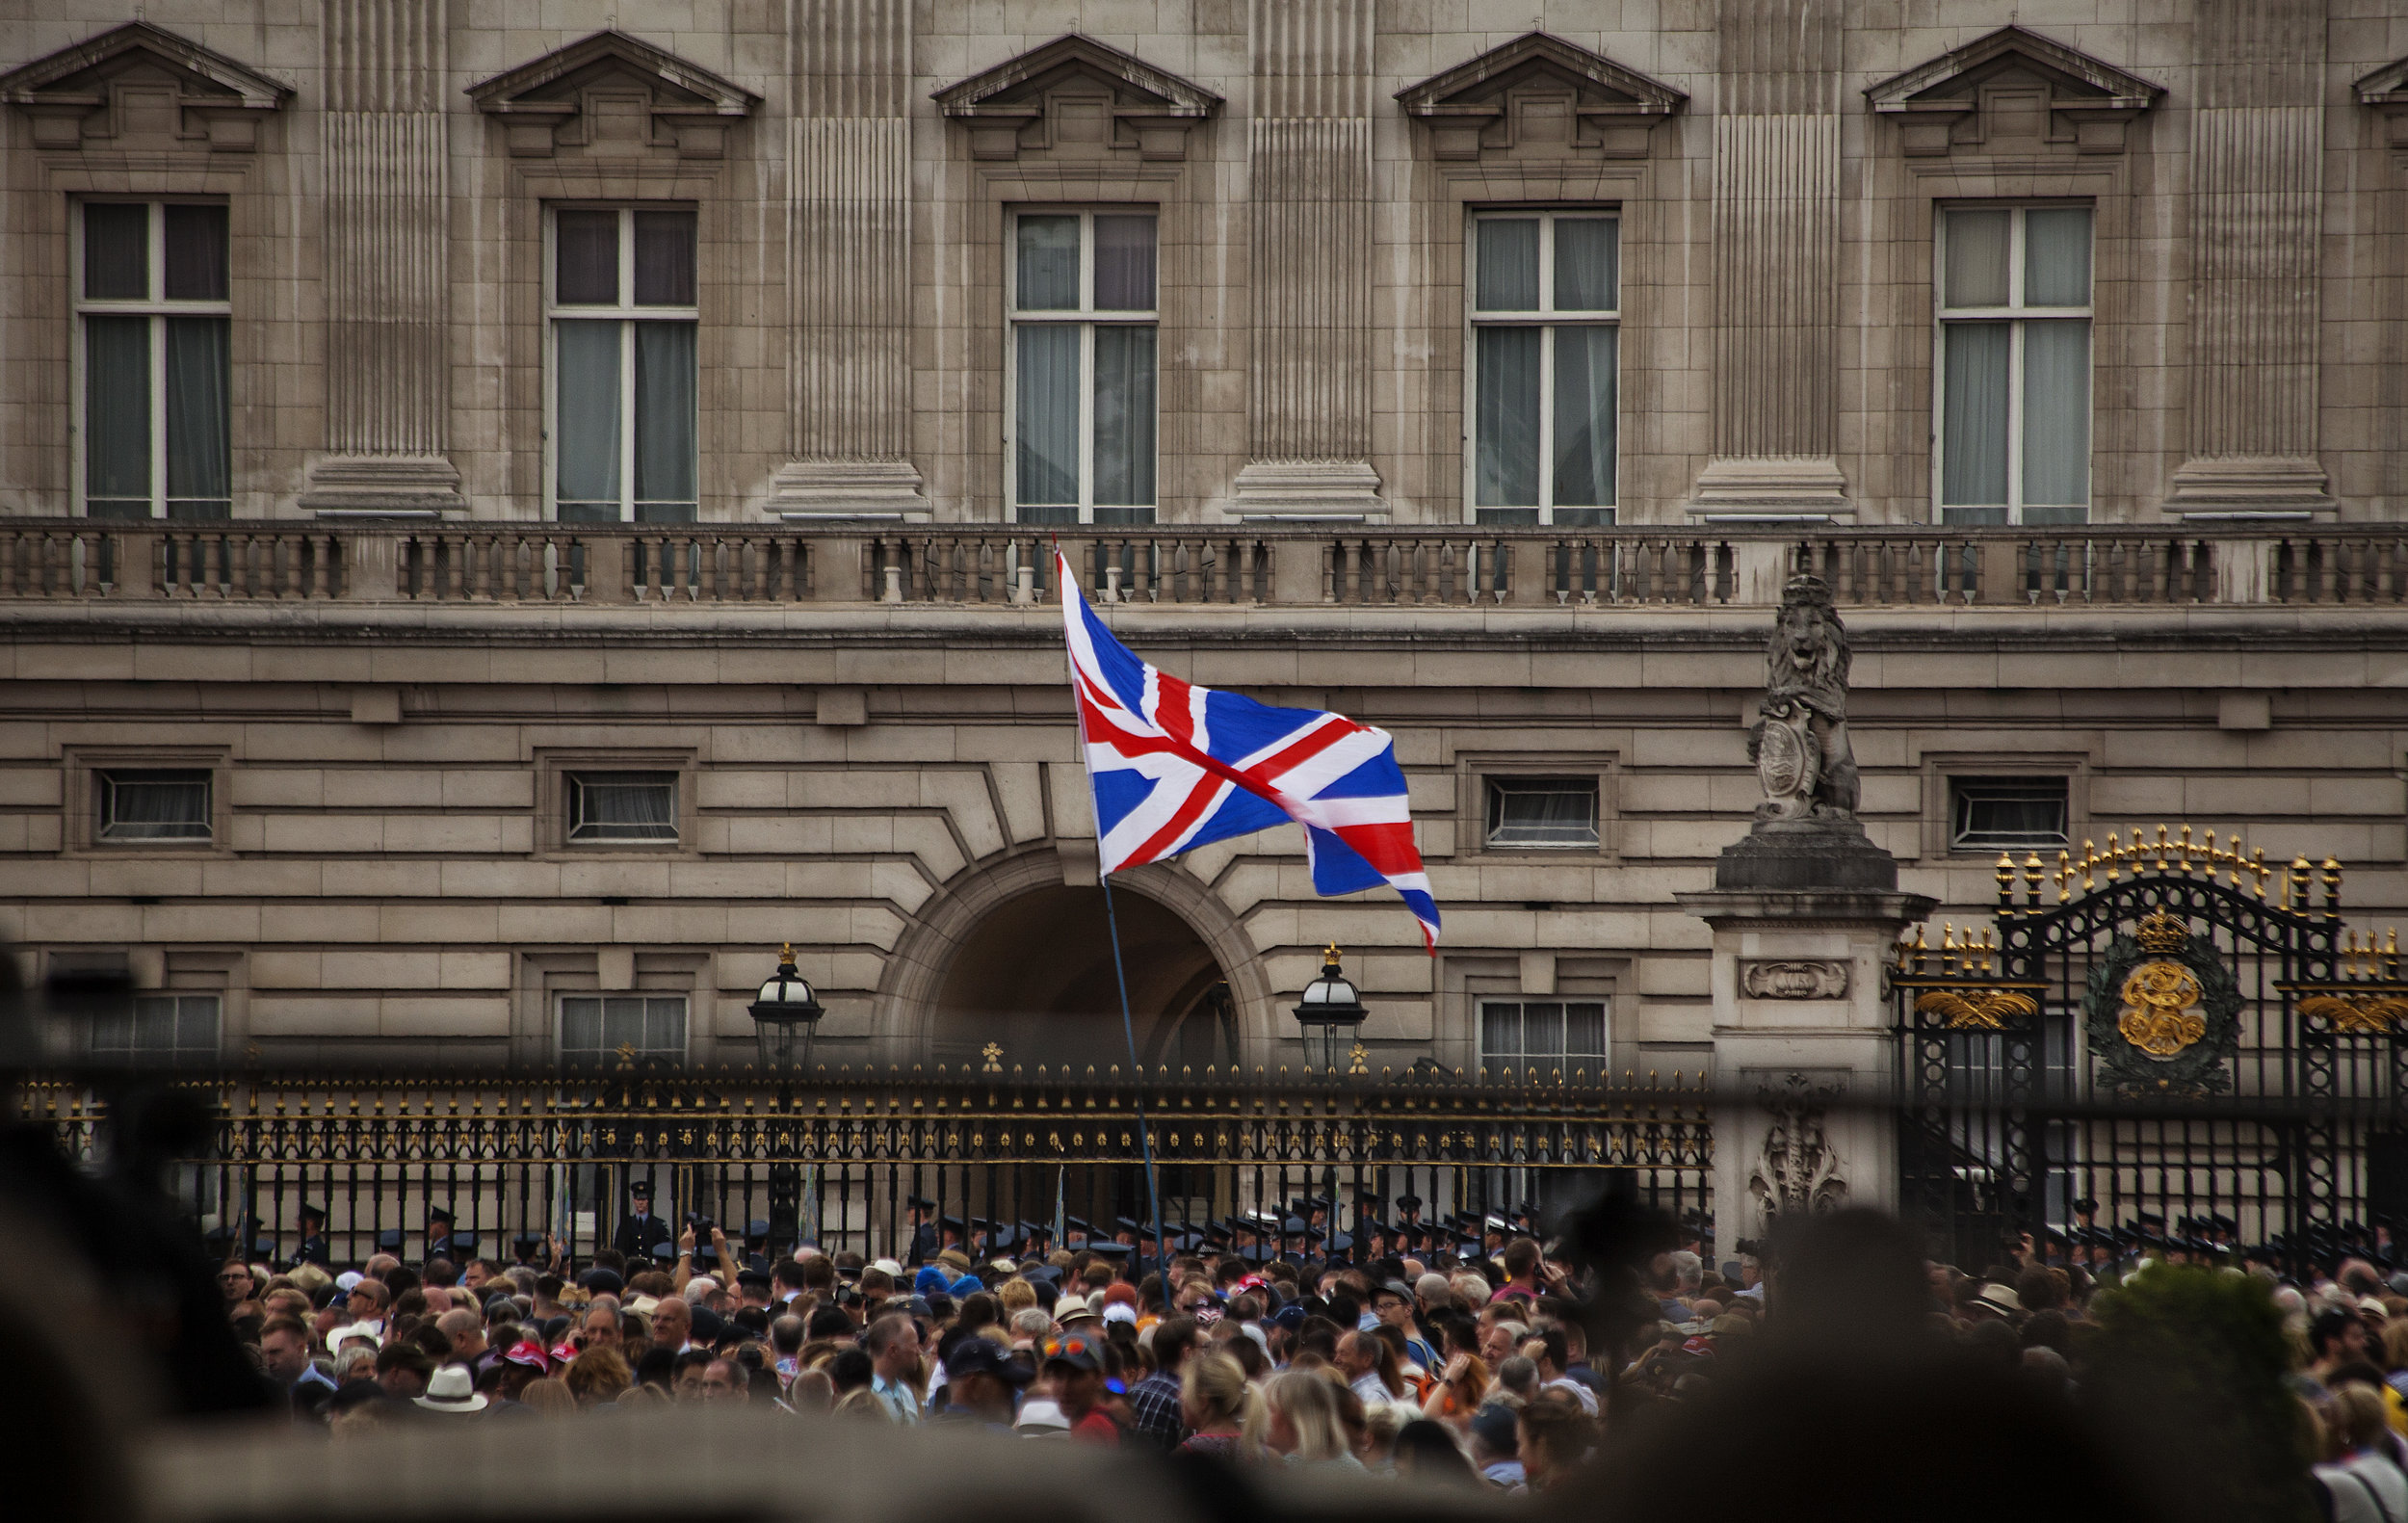 Do the British people really love the Queen? Here is your answer